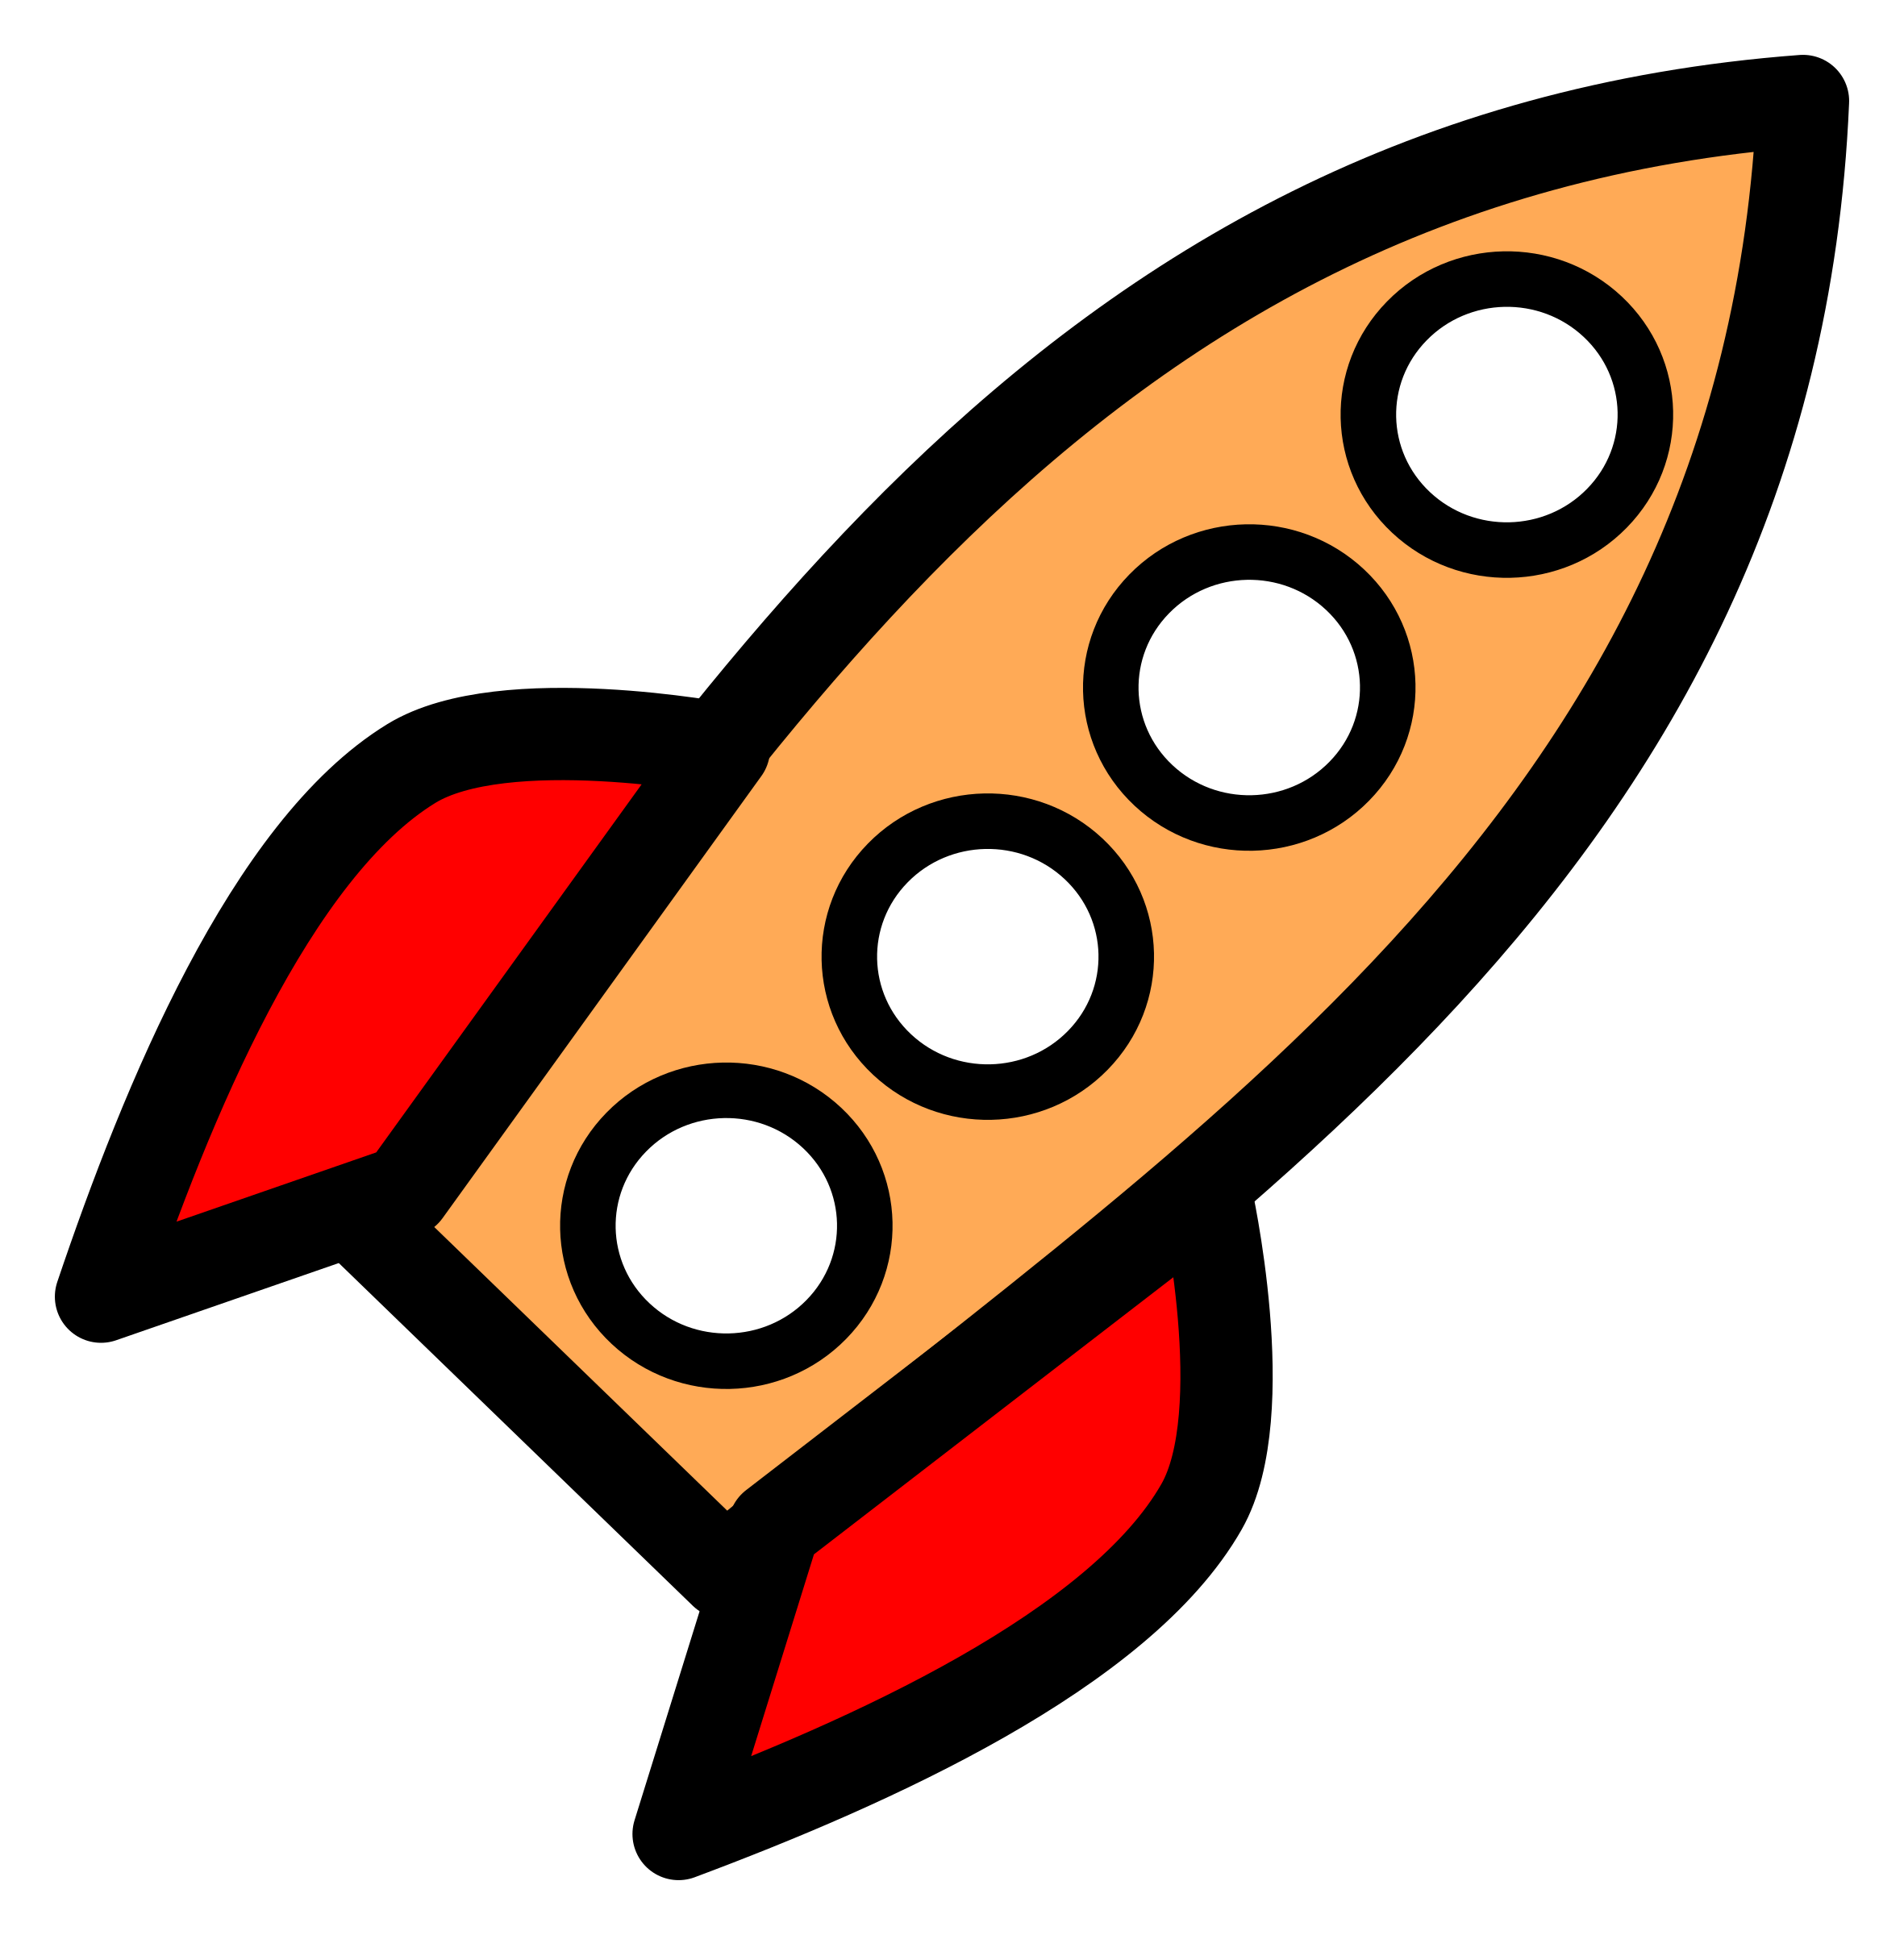 Clipart rocket blast off. Four window icons png